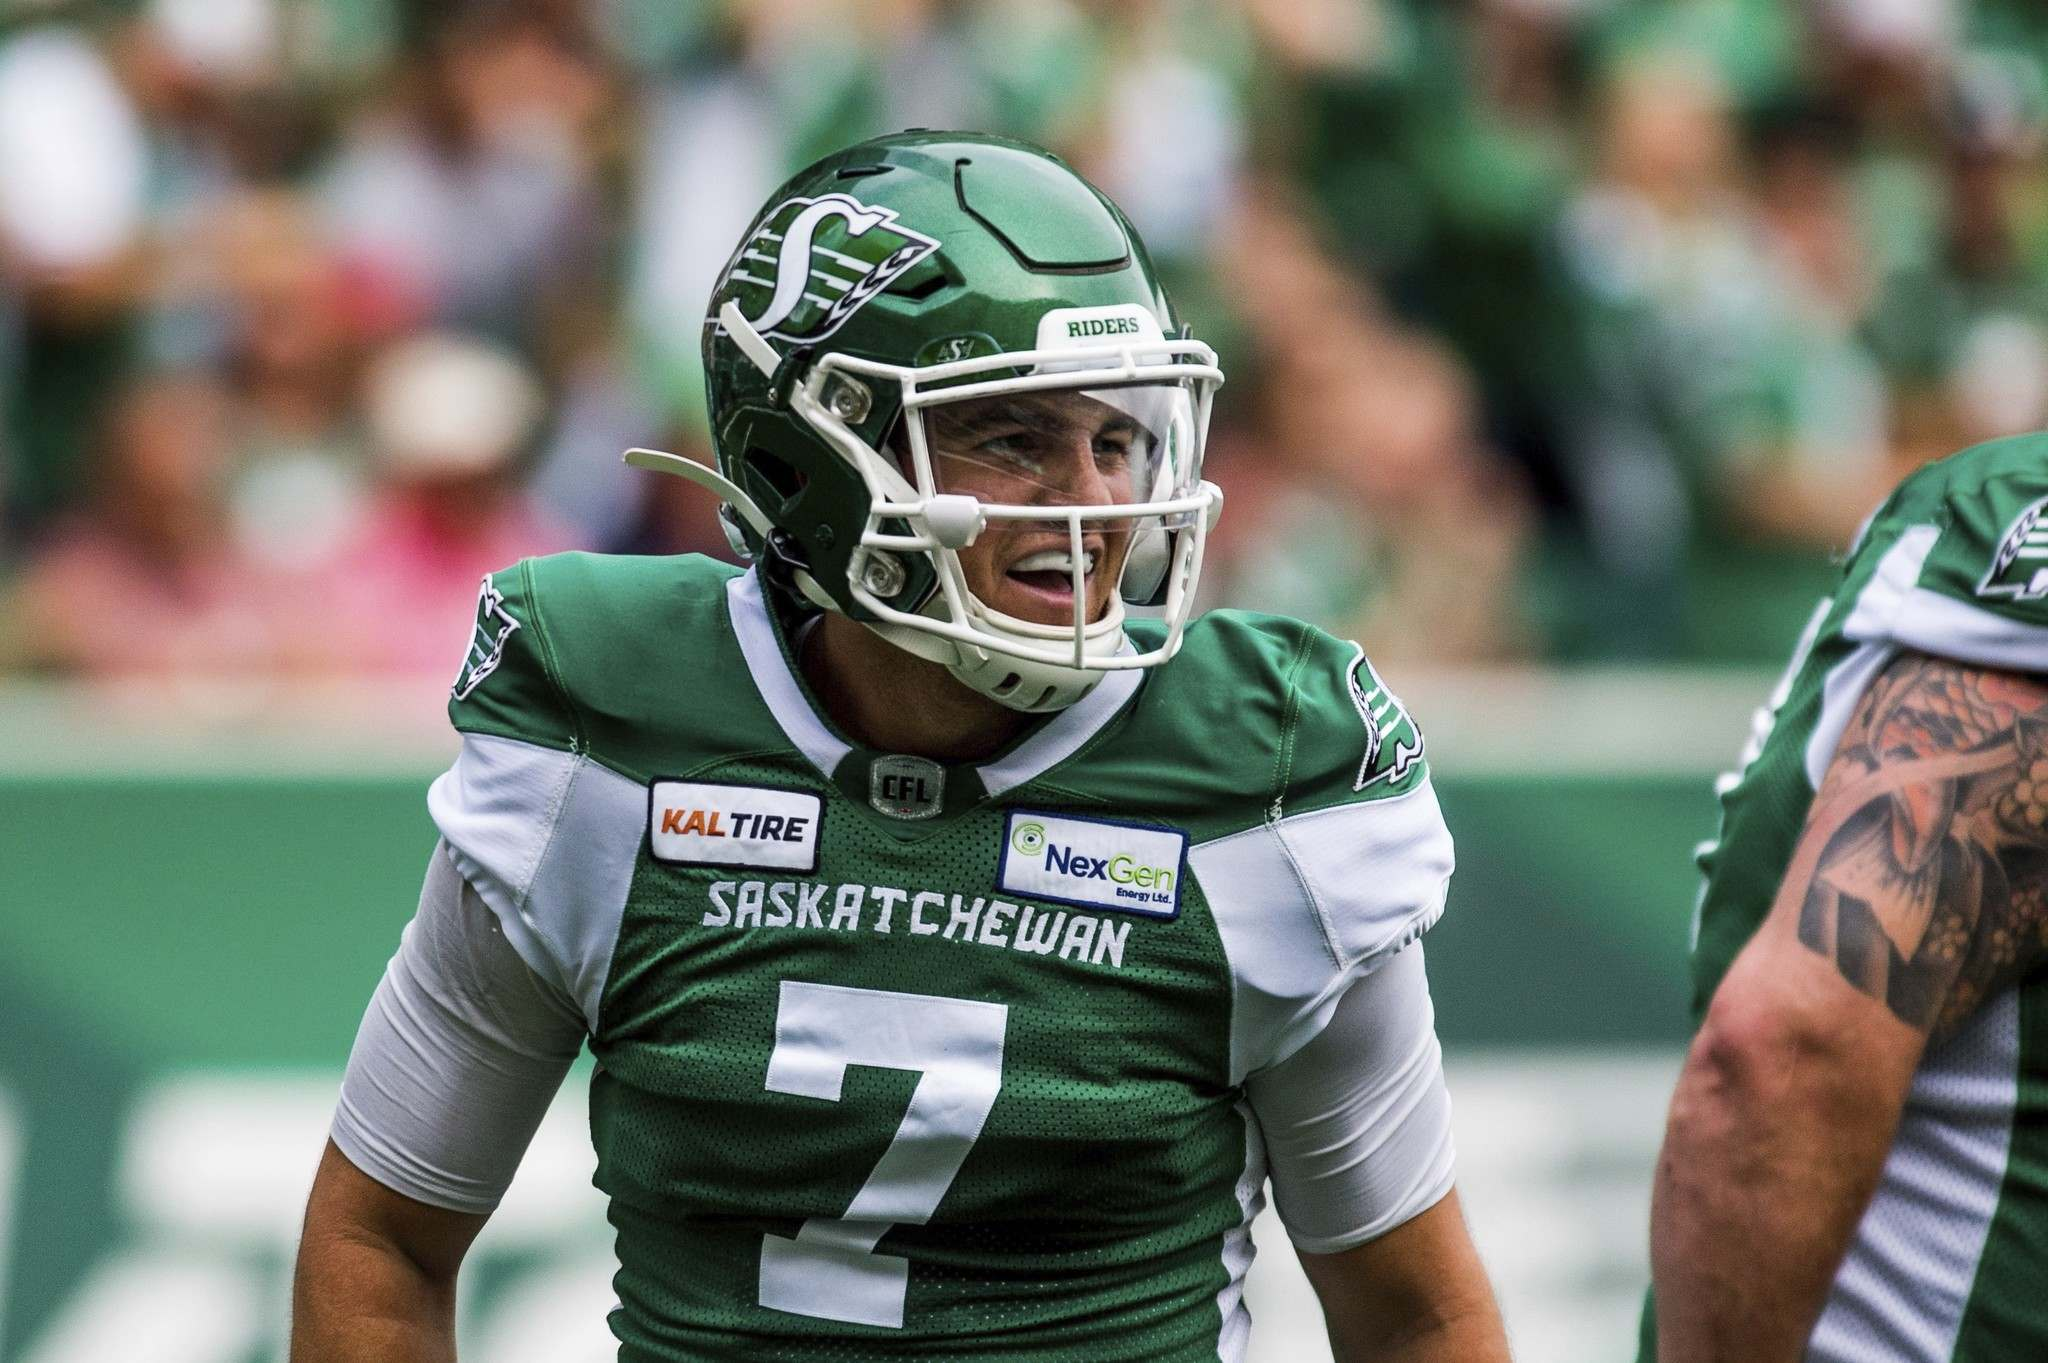 Saskatchewan Roughriders quarterback Cody Fajardo hasn't played since Oct. 30 when he injured an oblique muscle in practice but will be the starter on Sunday. (Matt Smith / The Canadian Press files)</p>